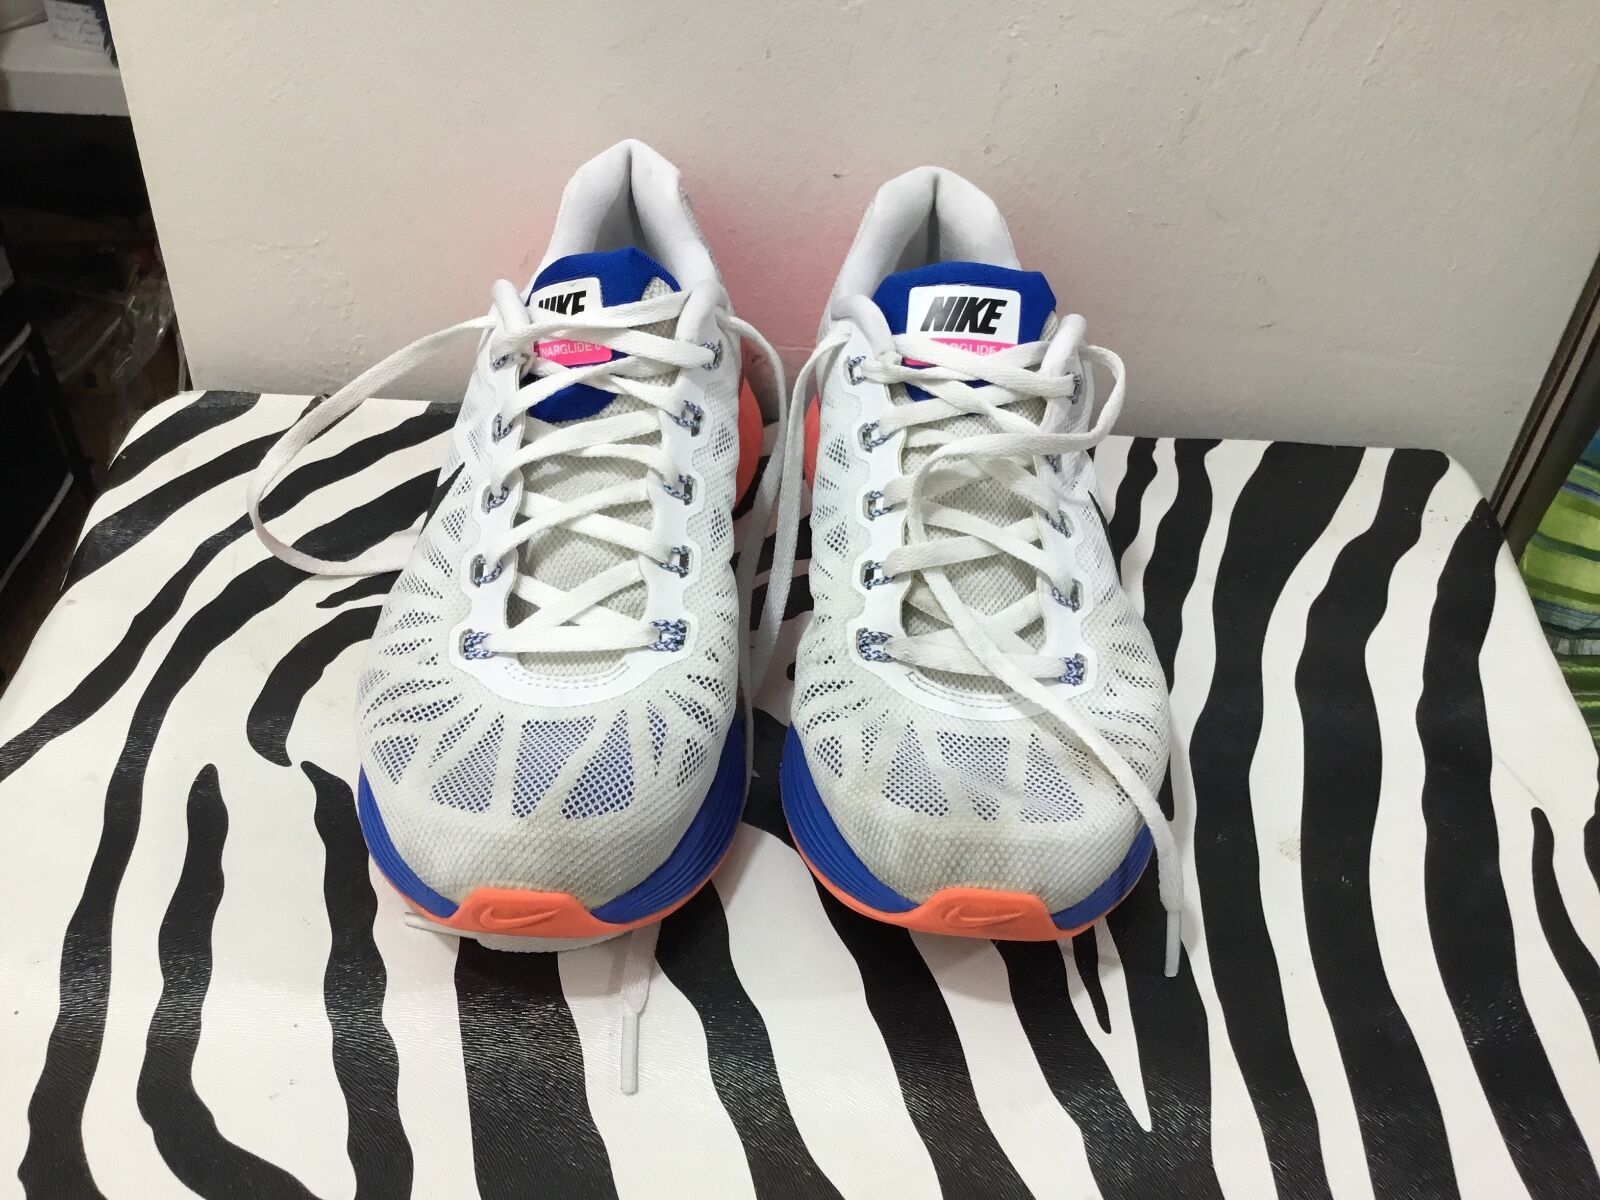 Nike ladies size 7 1/2 lunar glide six athletic shoes